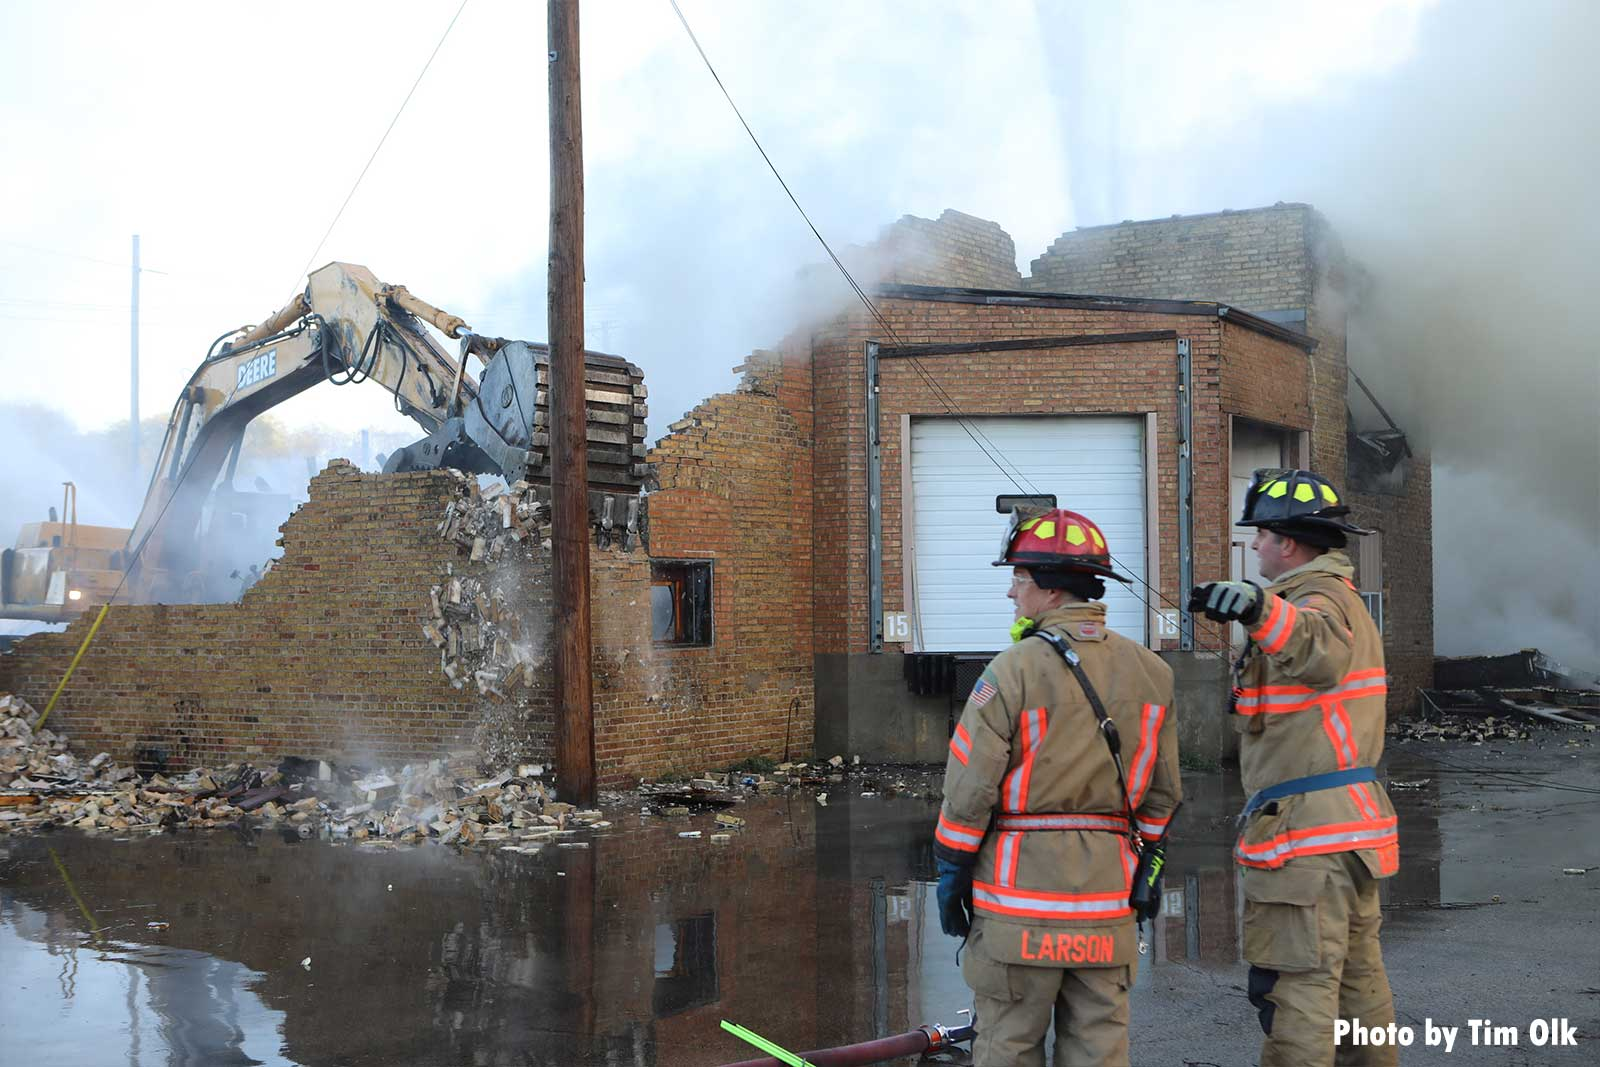 Firefighters with excavator in background knocking down building